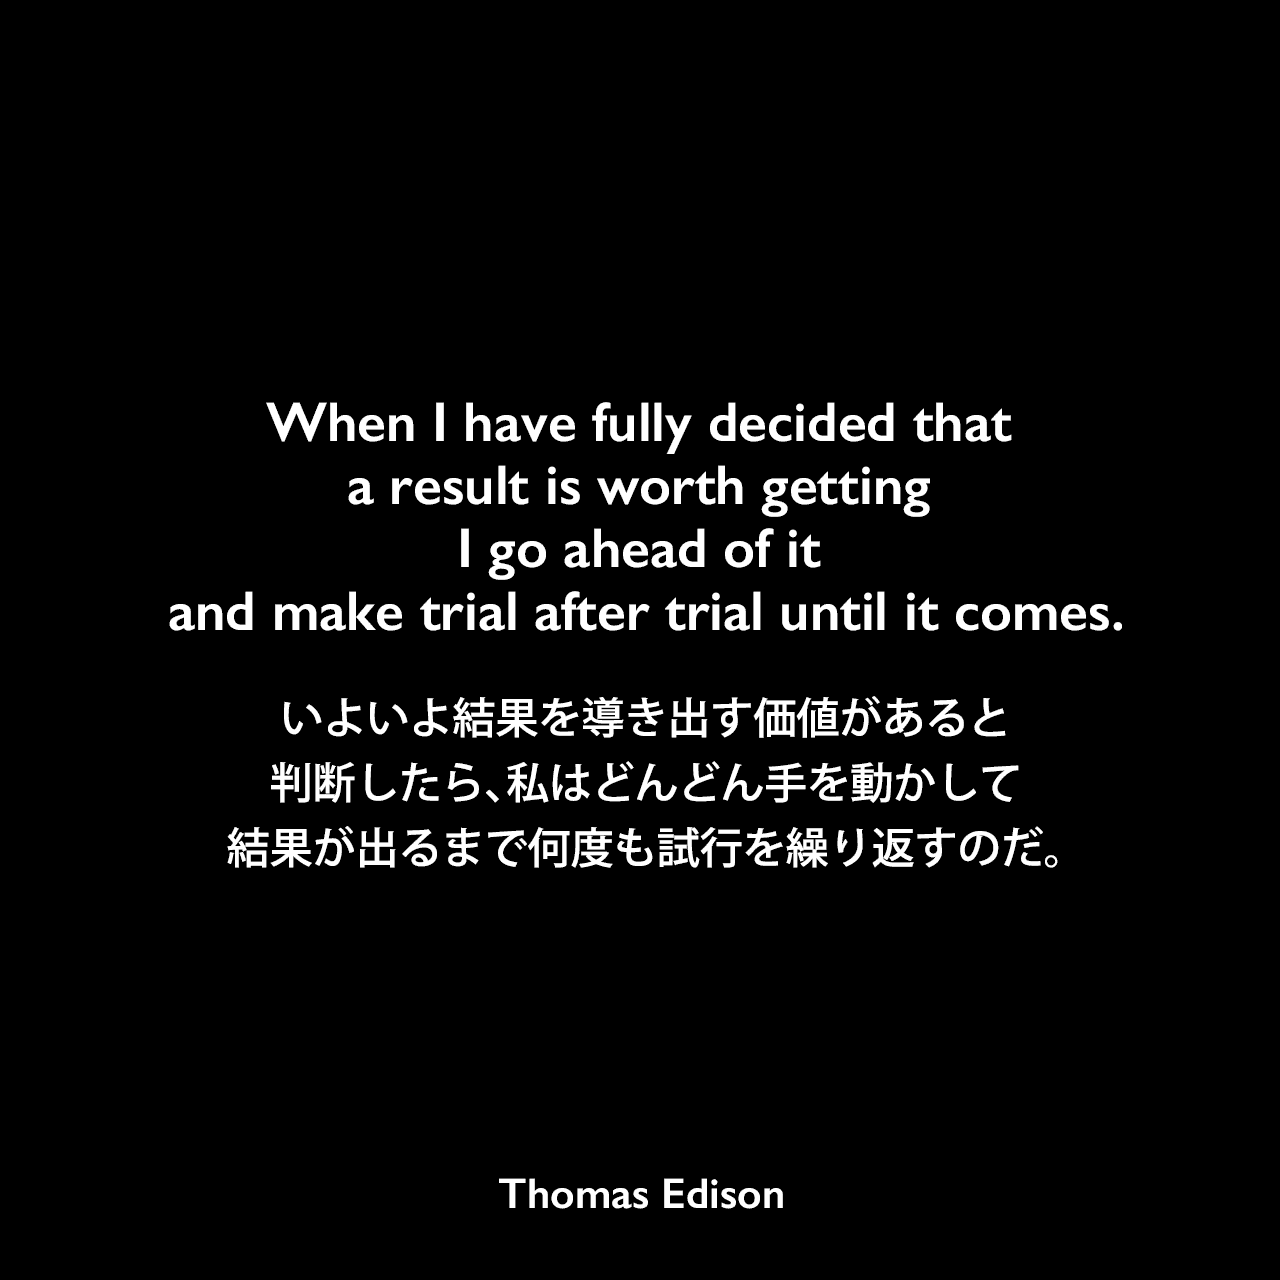 When I have fully decided that a result is worth getting I go ahead of it and make trial after trial until it comes.いよいよ結果を導き出す価値があると判断したら、私はどんどん手を動かして、結果が出るまで何度も試行を繰り返すのだ。- Edison Innovation Foundationよりエジソンの言葉として引用Thomas Edison